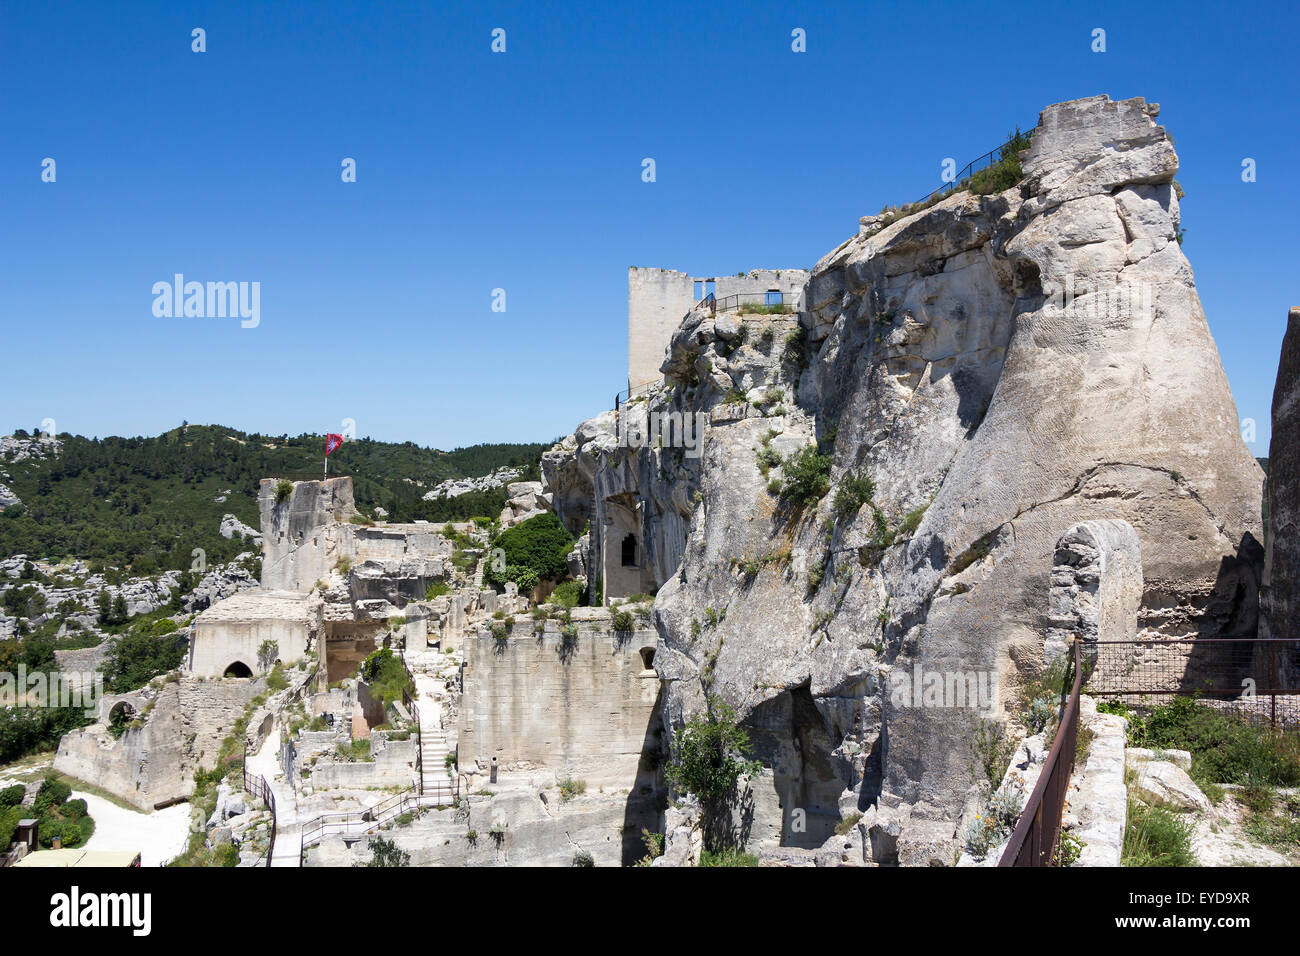 The Castle Of Chateau Des Baux De Provence France Europe